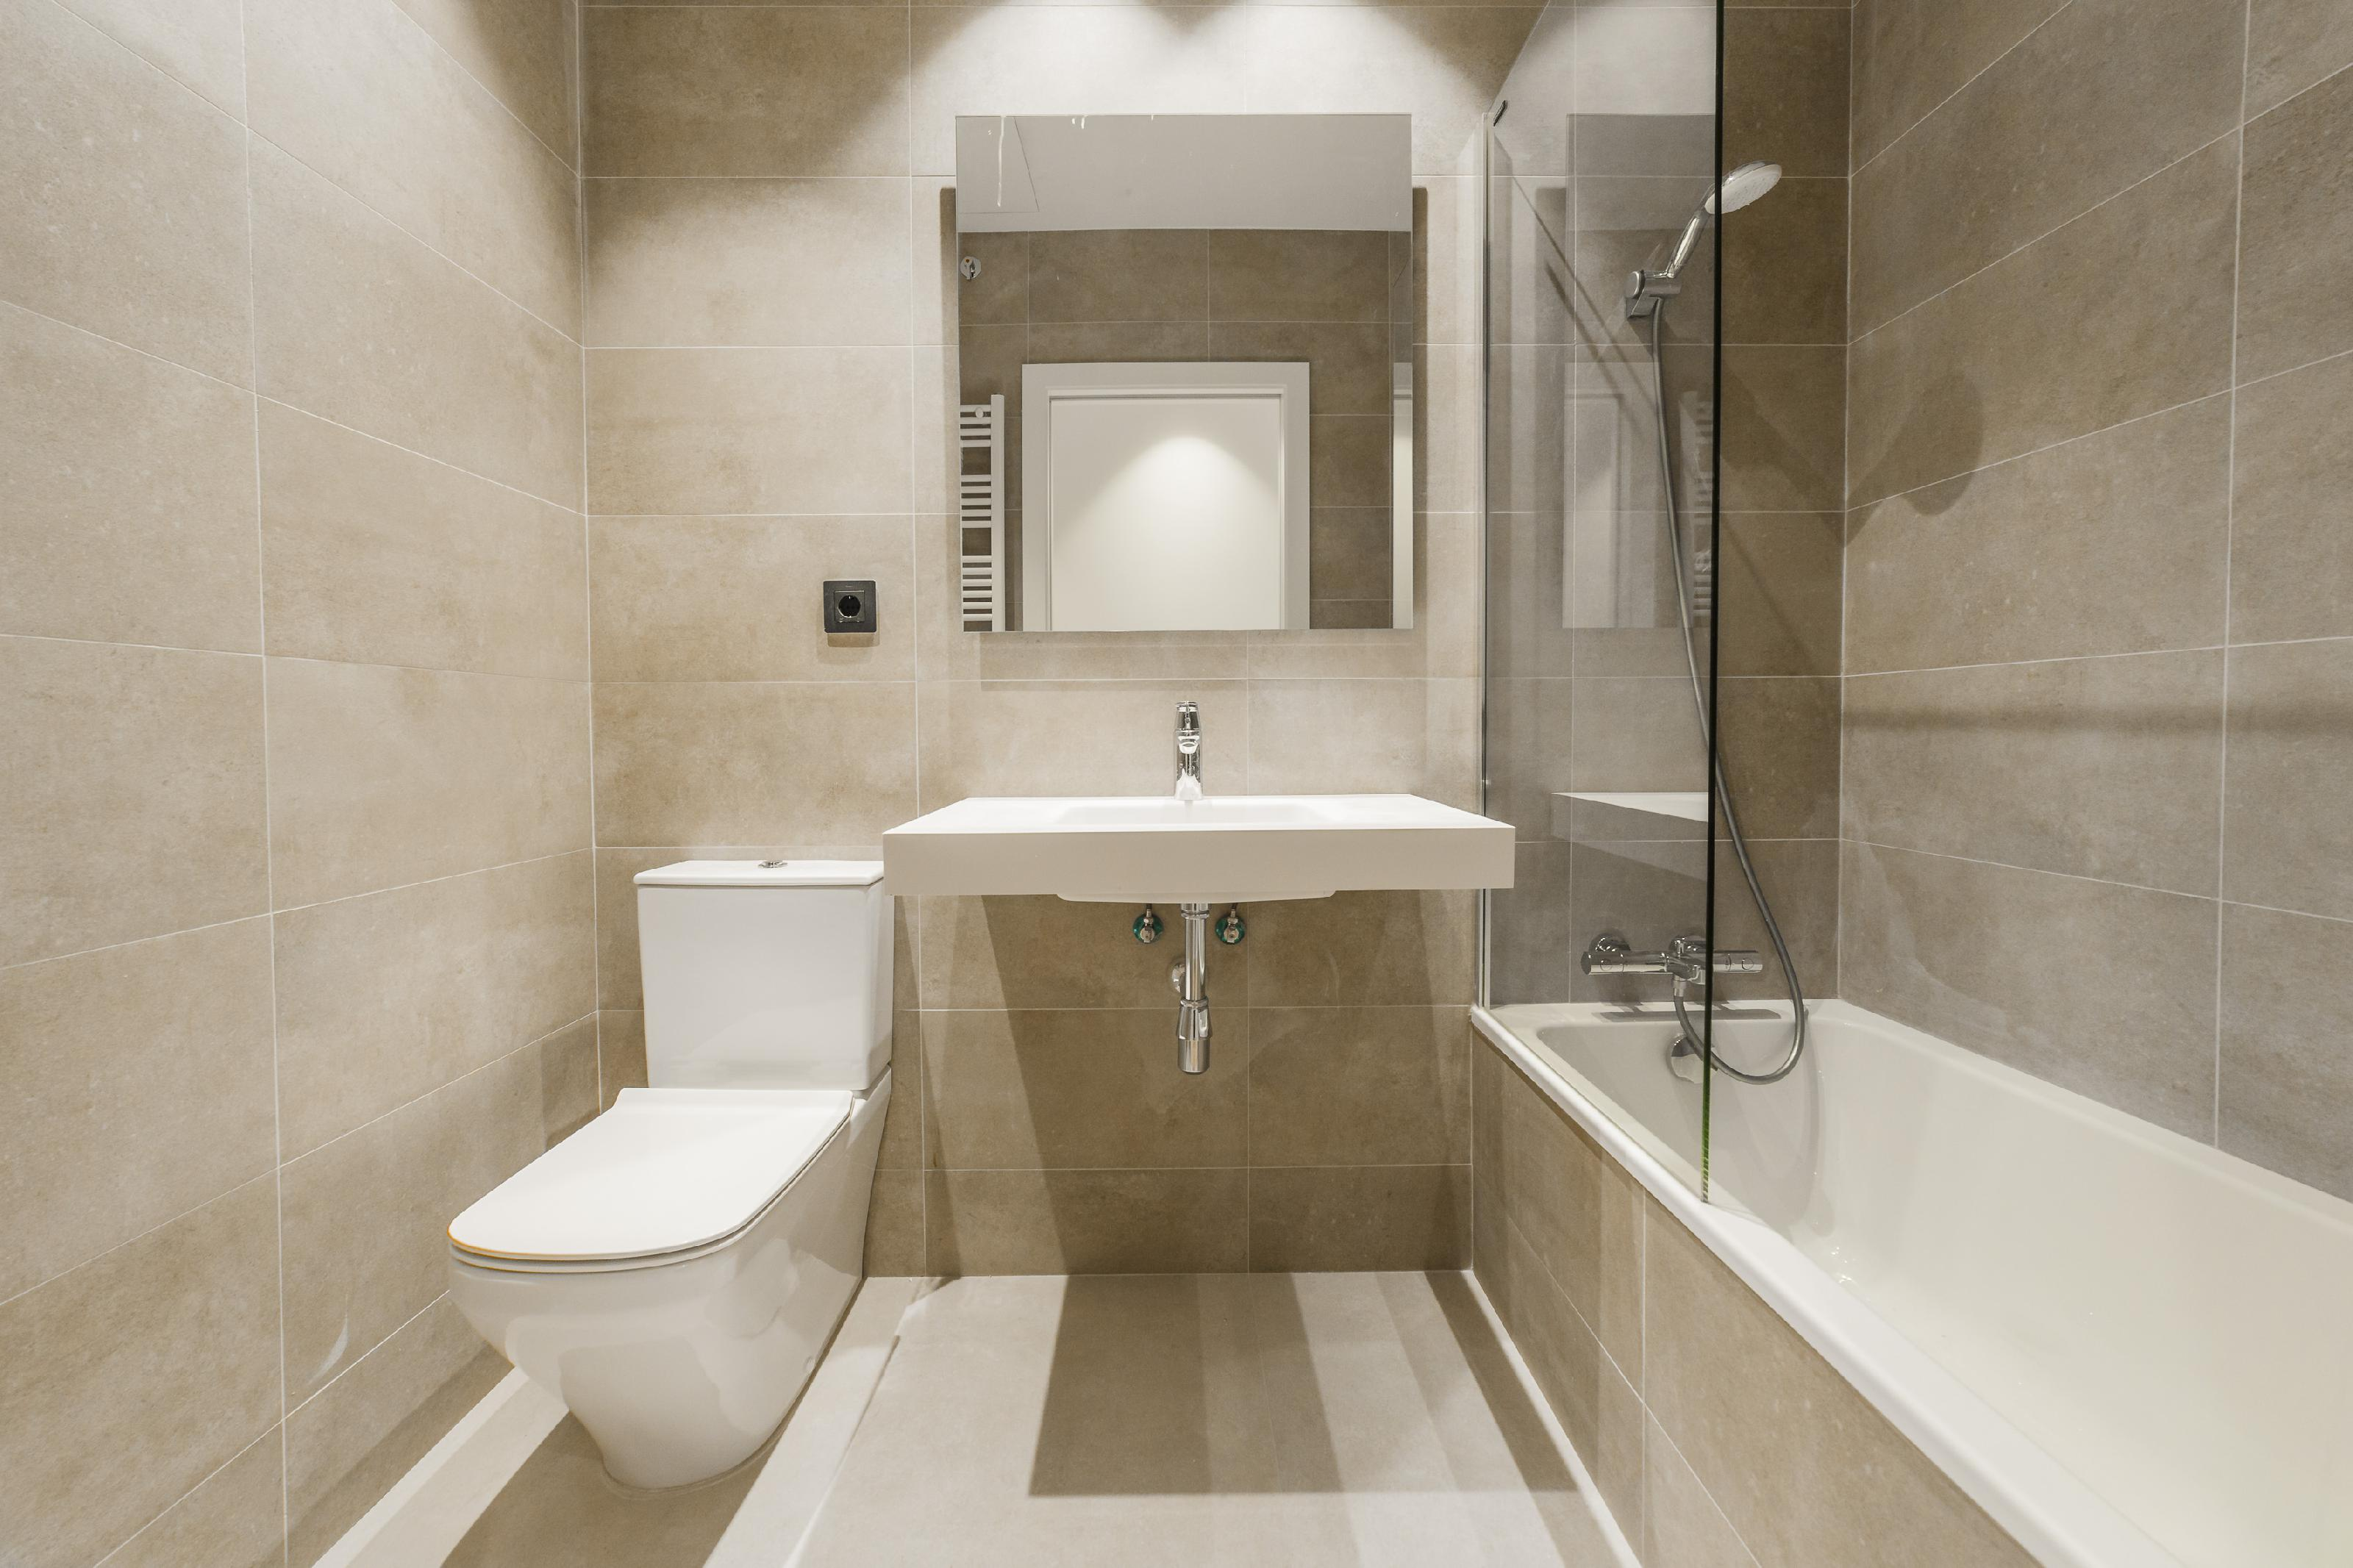 182176 Apartment for sale in Eixample, Old Left Eixample 30